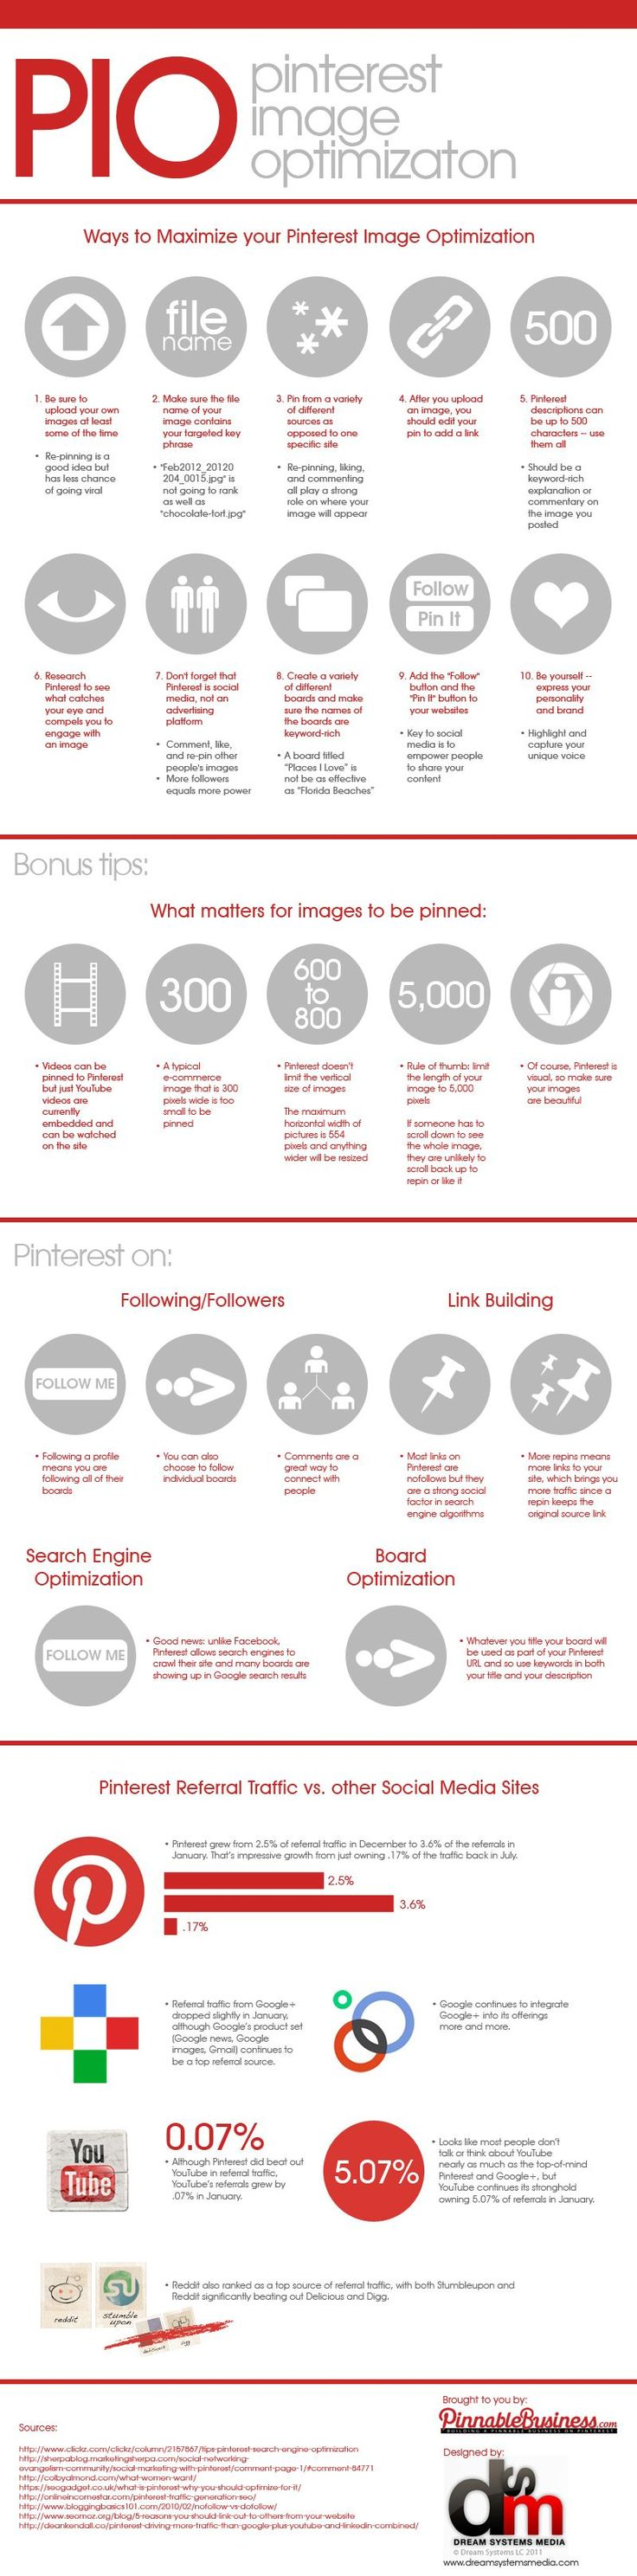 How to Make Images Stand Out on Pinterest [INFOGRAPHIC] - via Mashable http://on.mash.to/GSD0si